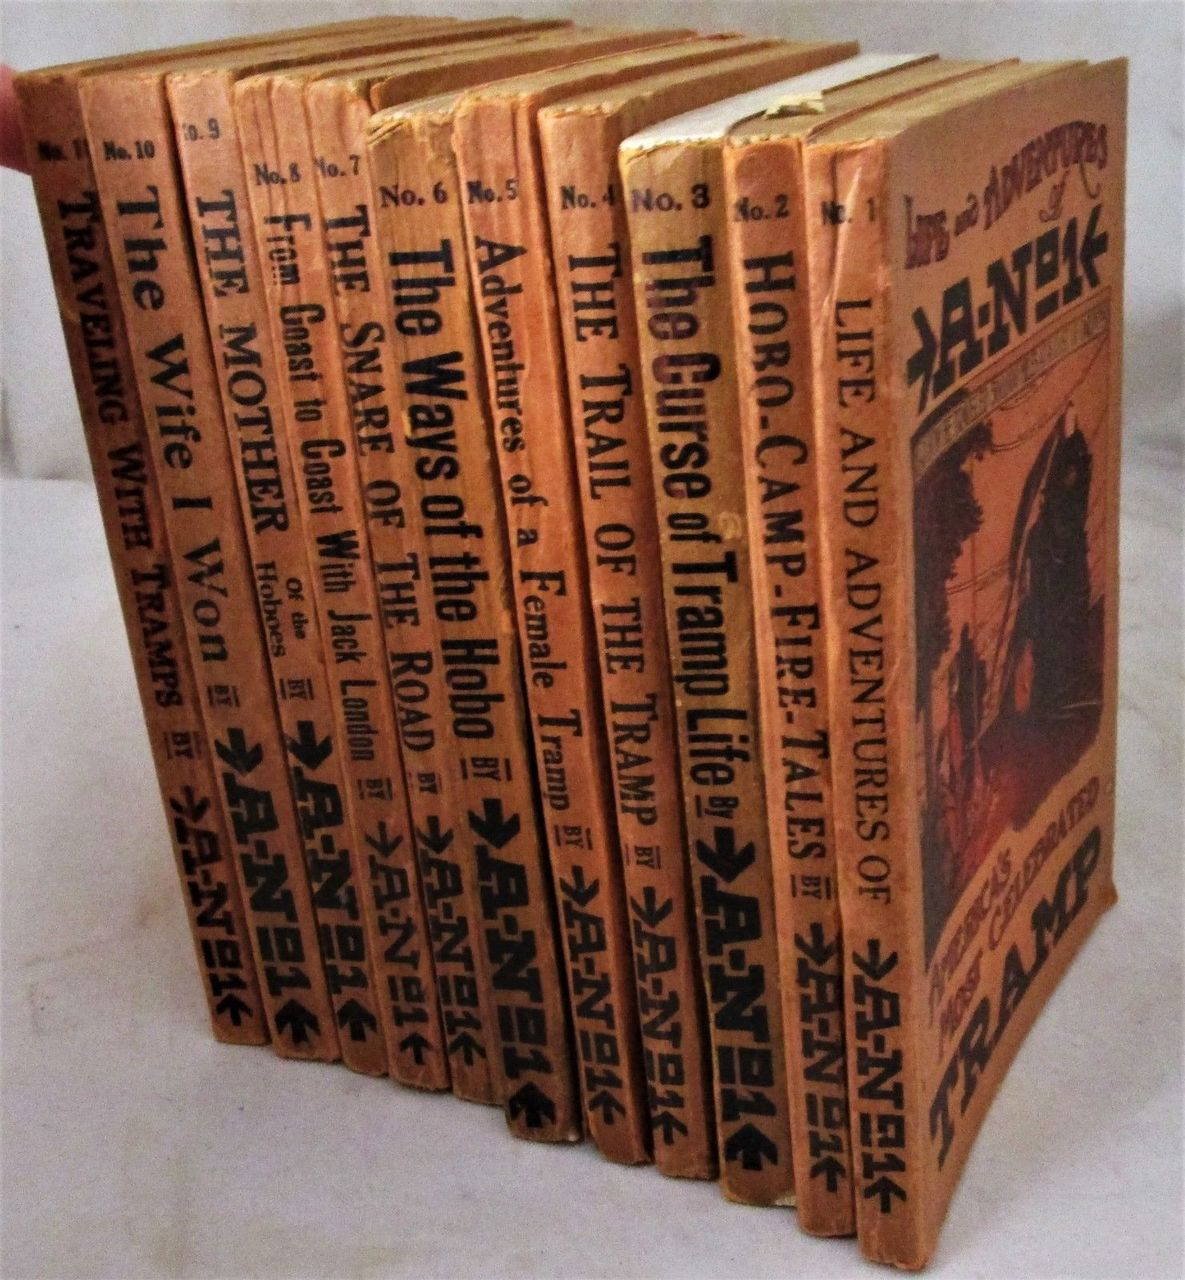 THE FAMOUS TRAMP, by A No.1 [11 vols] - 1910